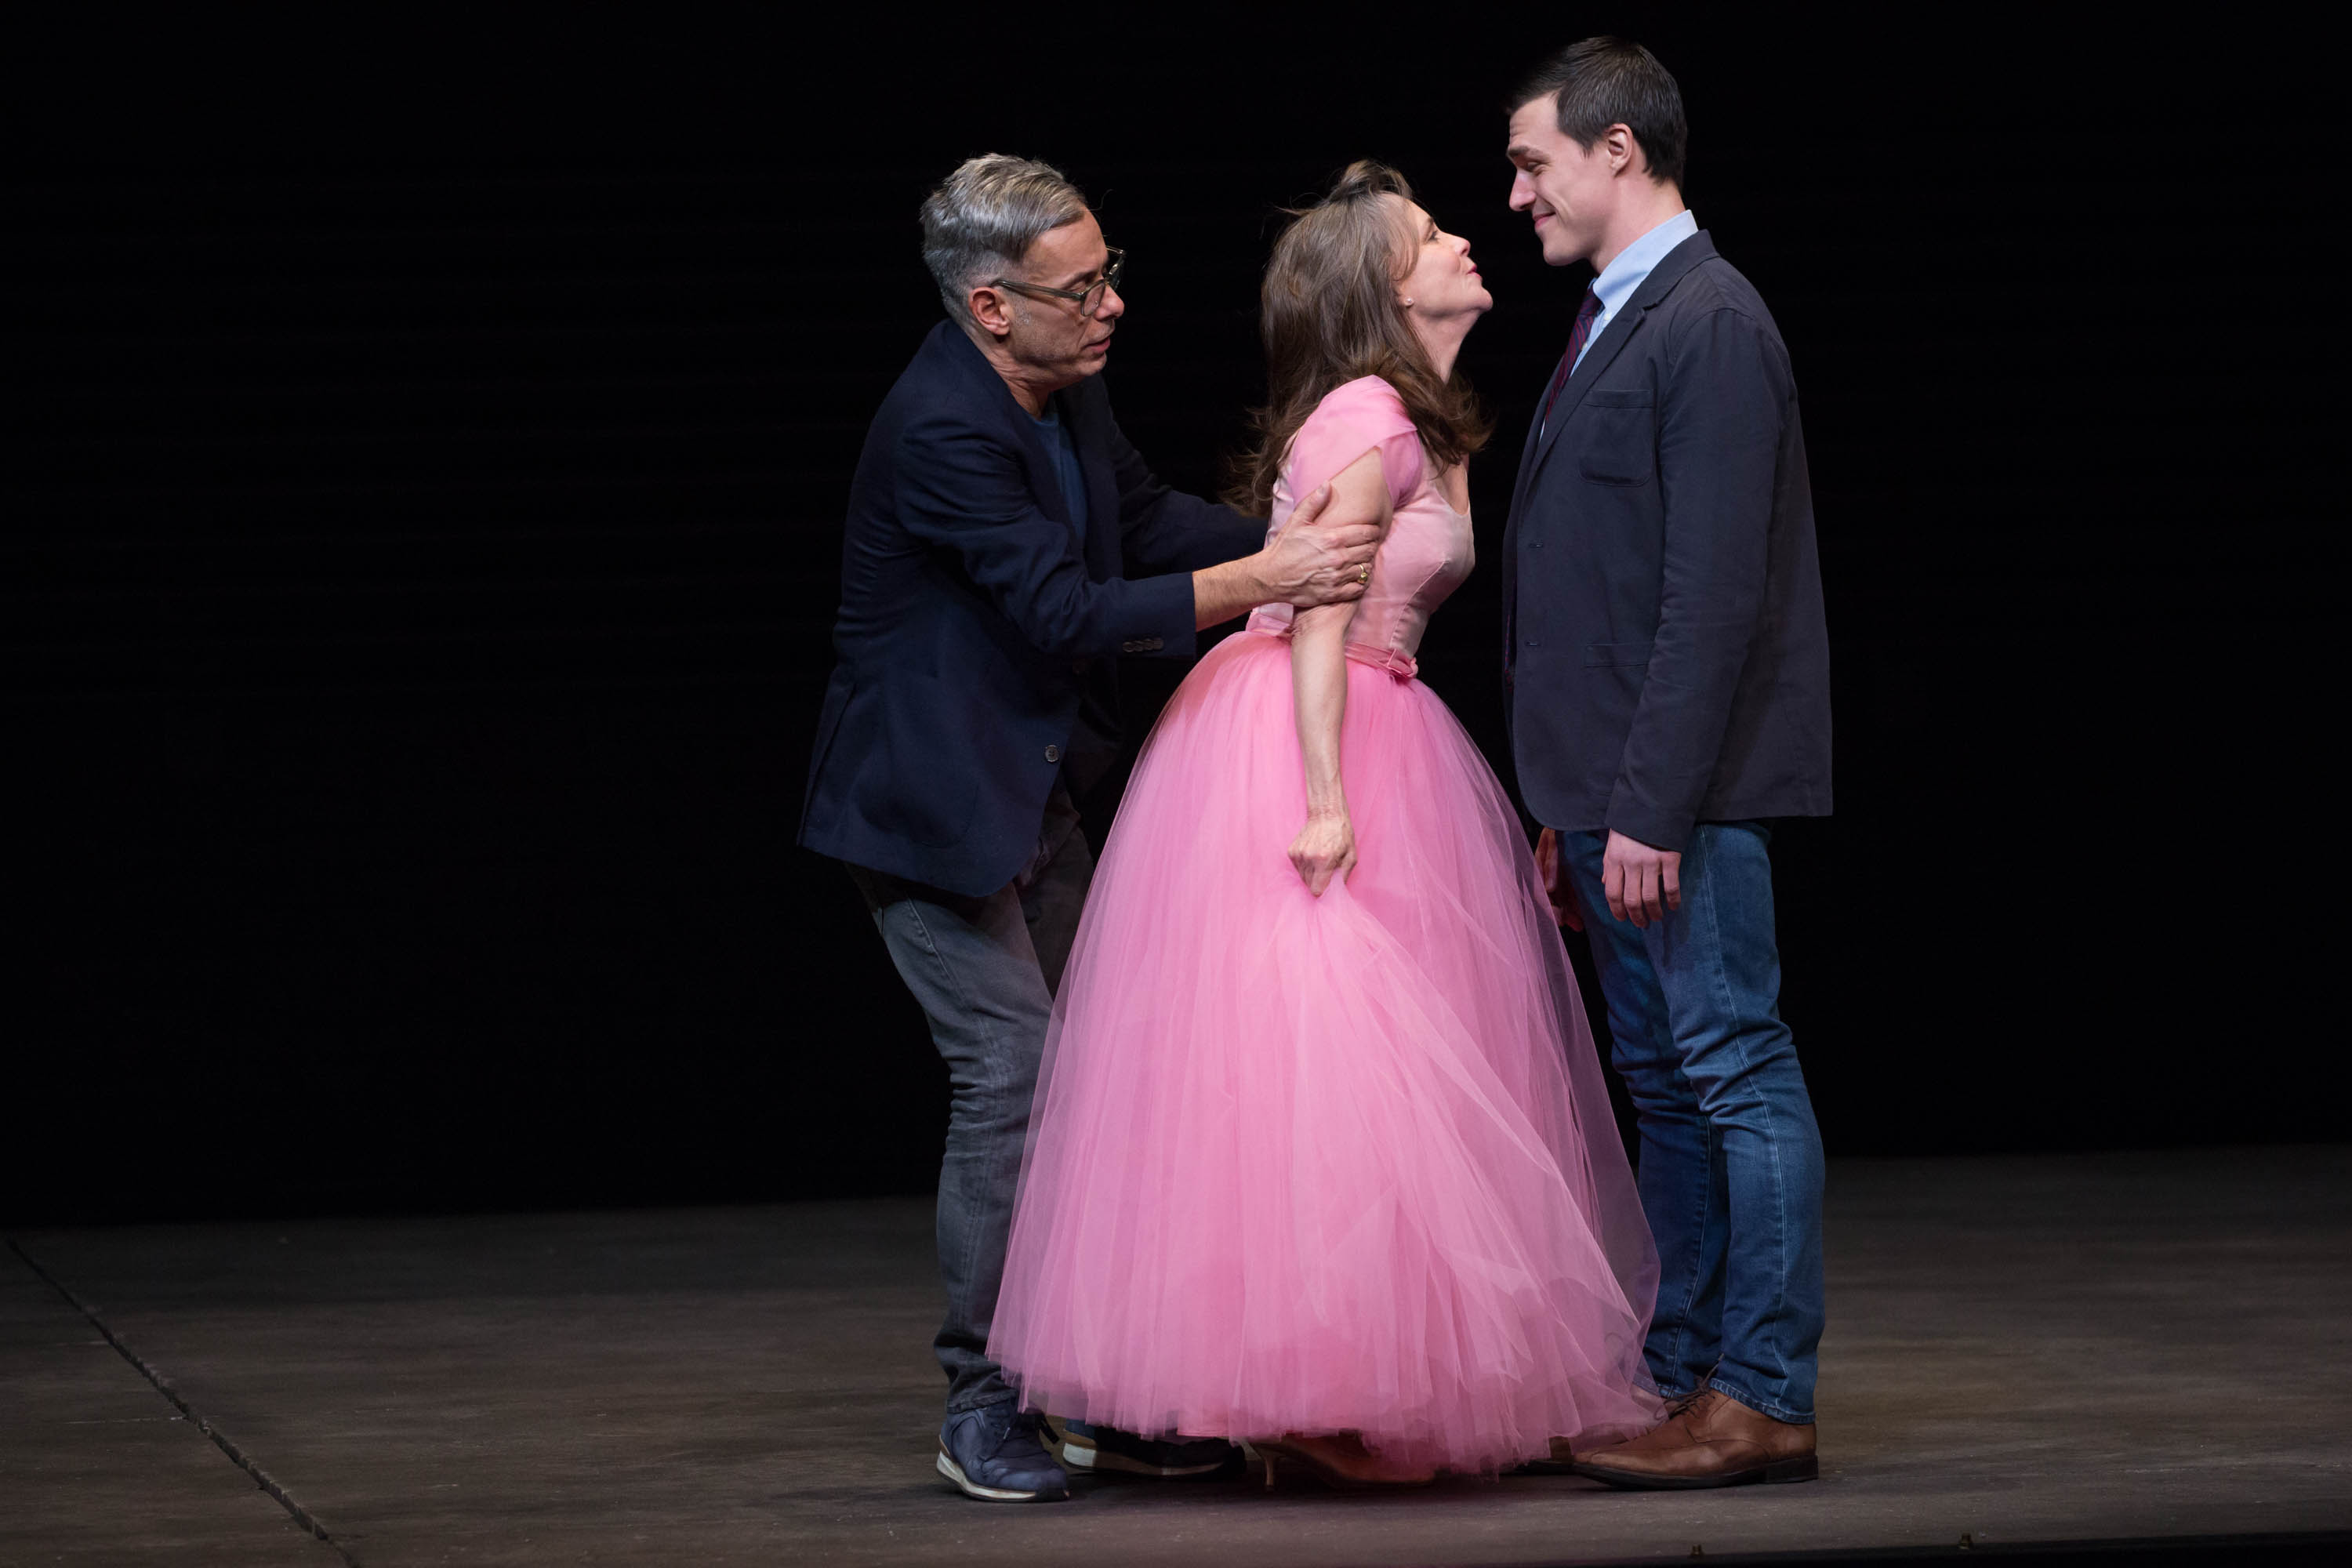 The Glass Menagerie With Joe Mantello And Sally Field Opens March 9 Playbill